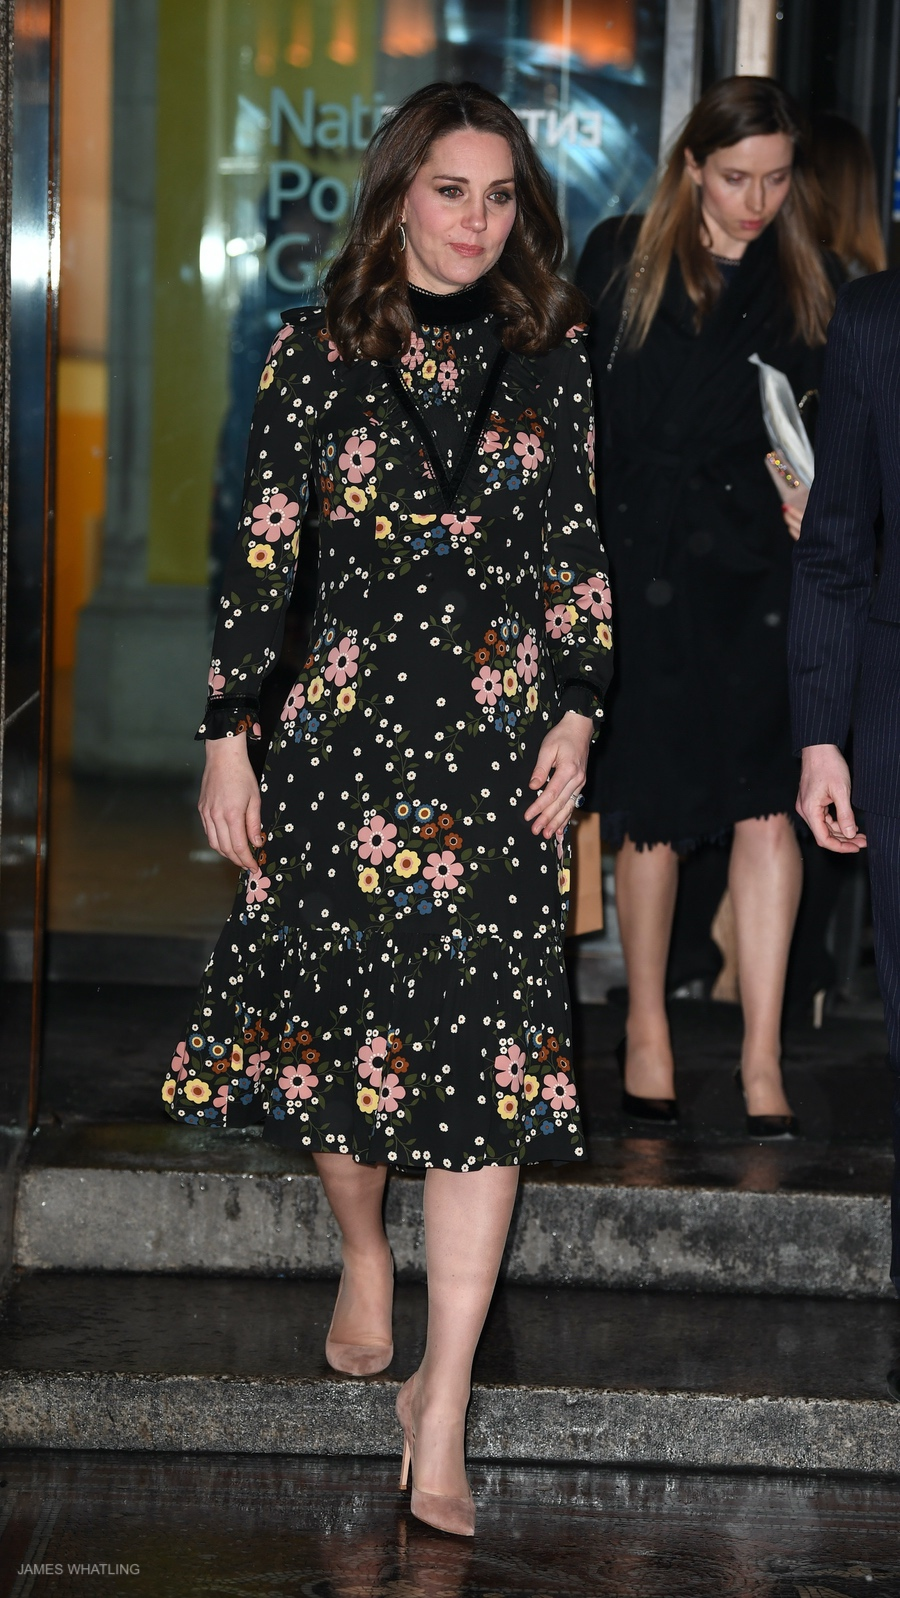 Kate Middleton wearing Orla Kiely